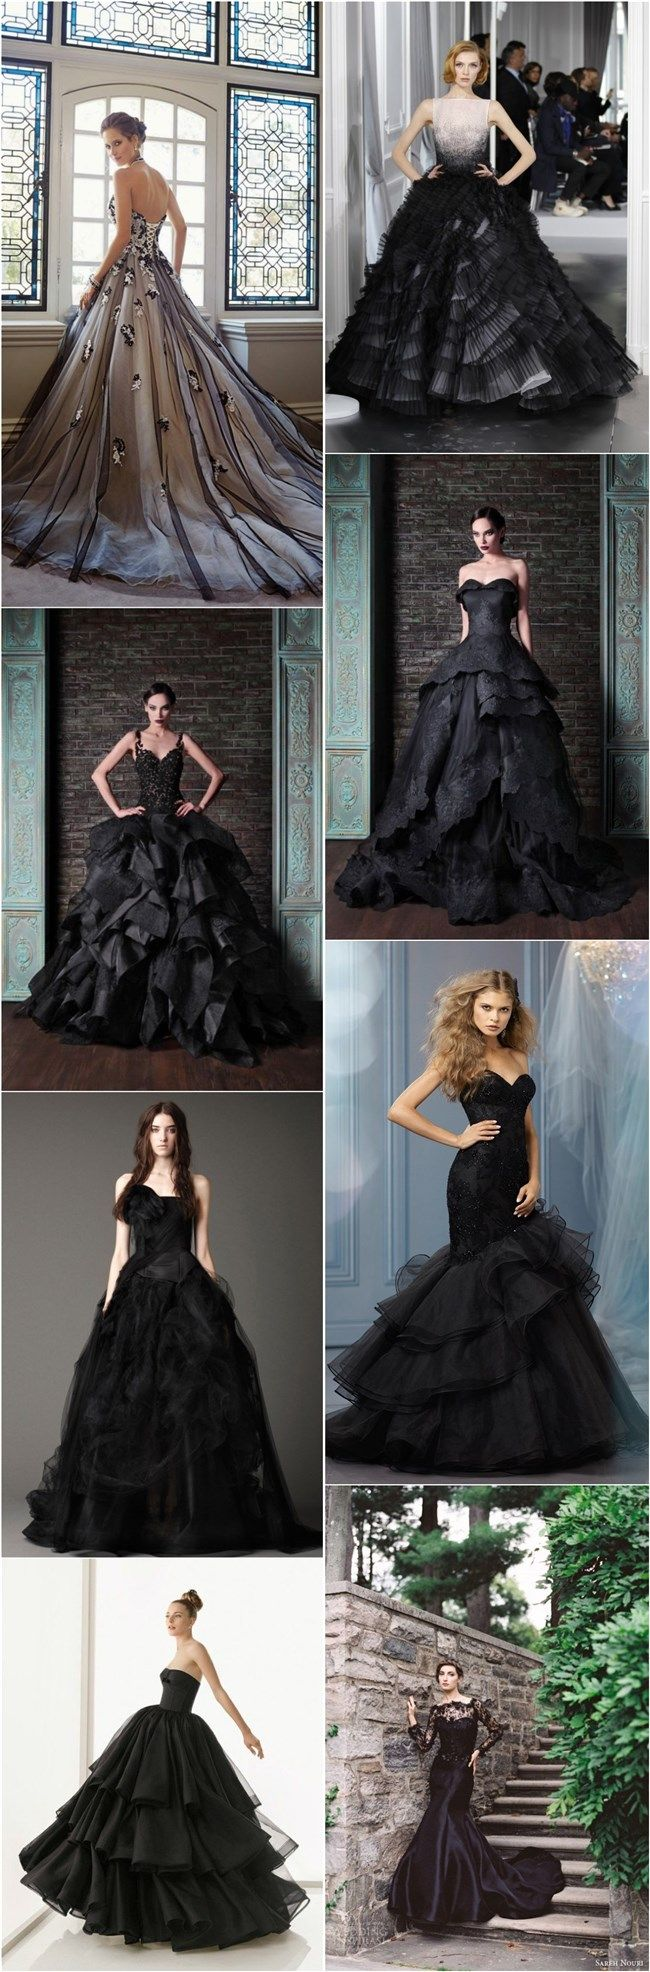 Black and gold wedding dresses   best dreams images on Pinterest  Black gowns Evening